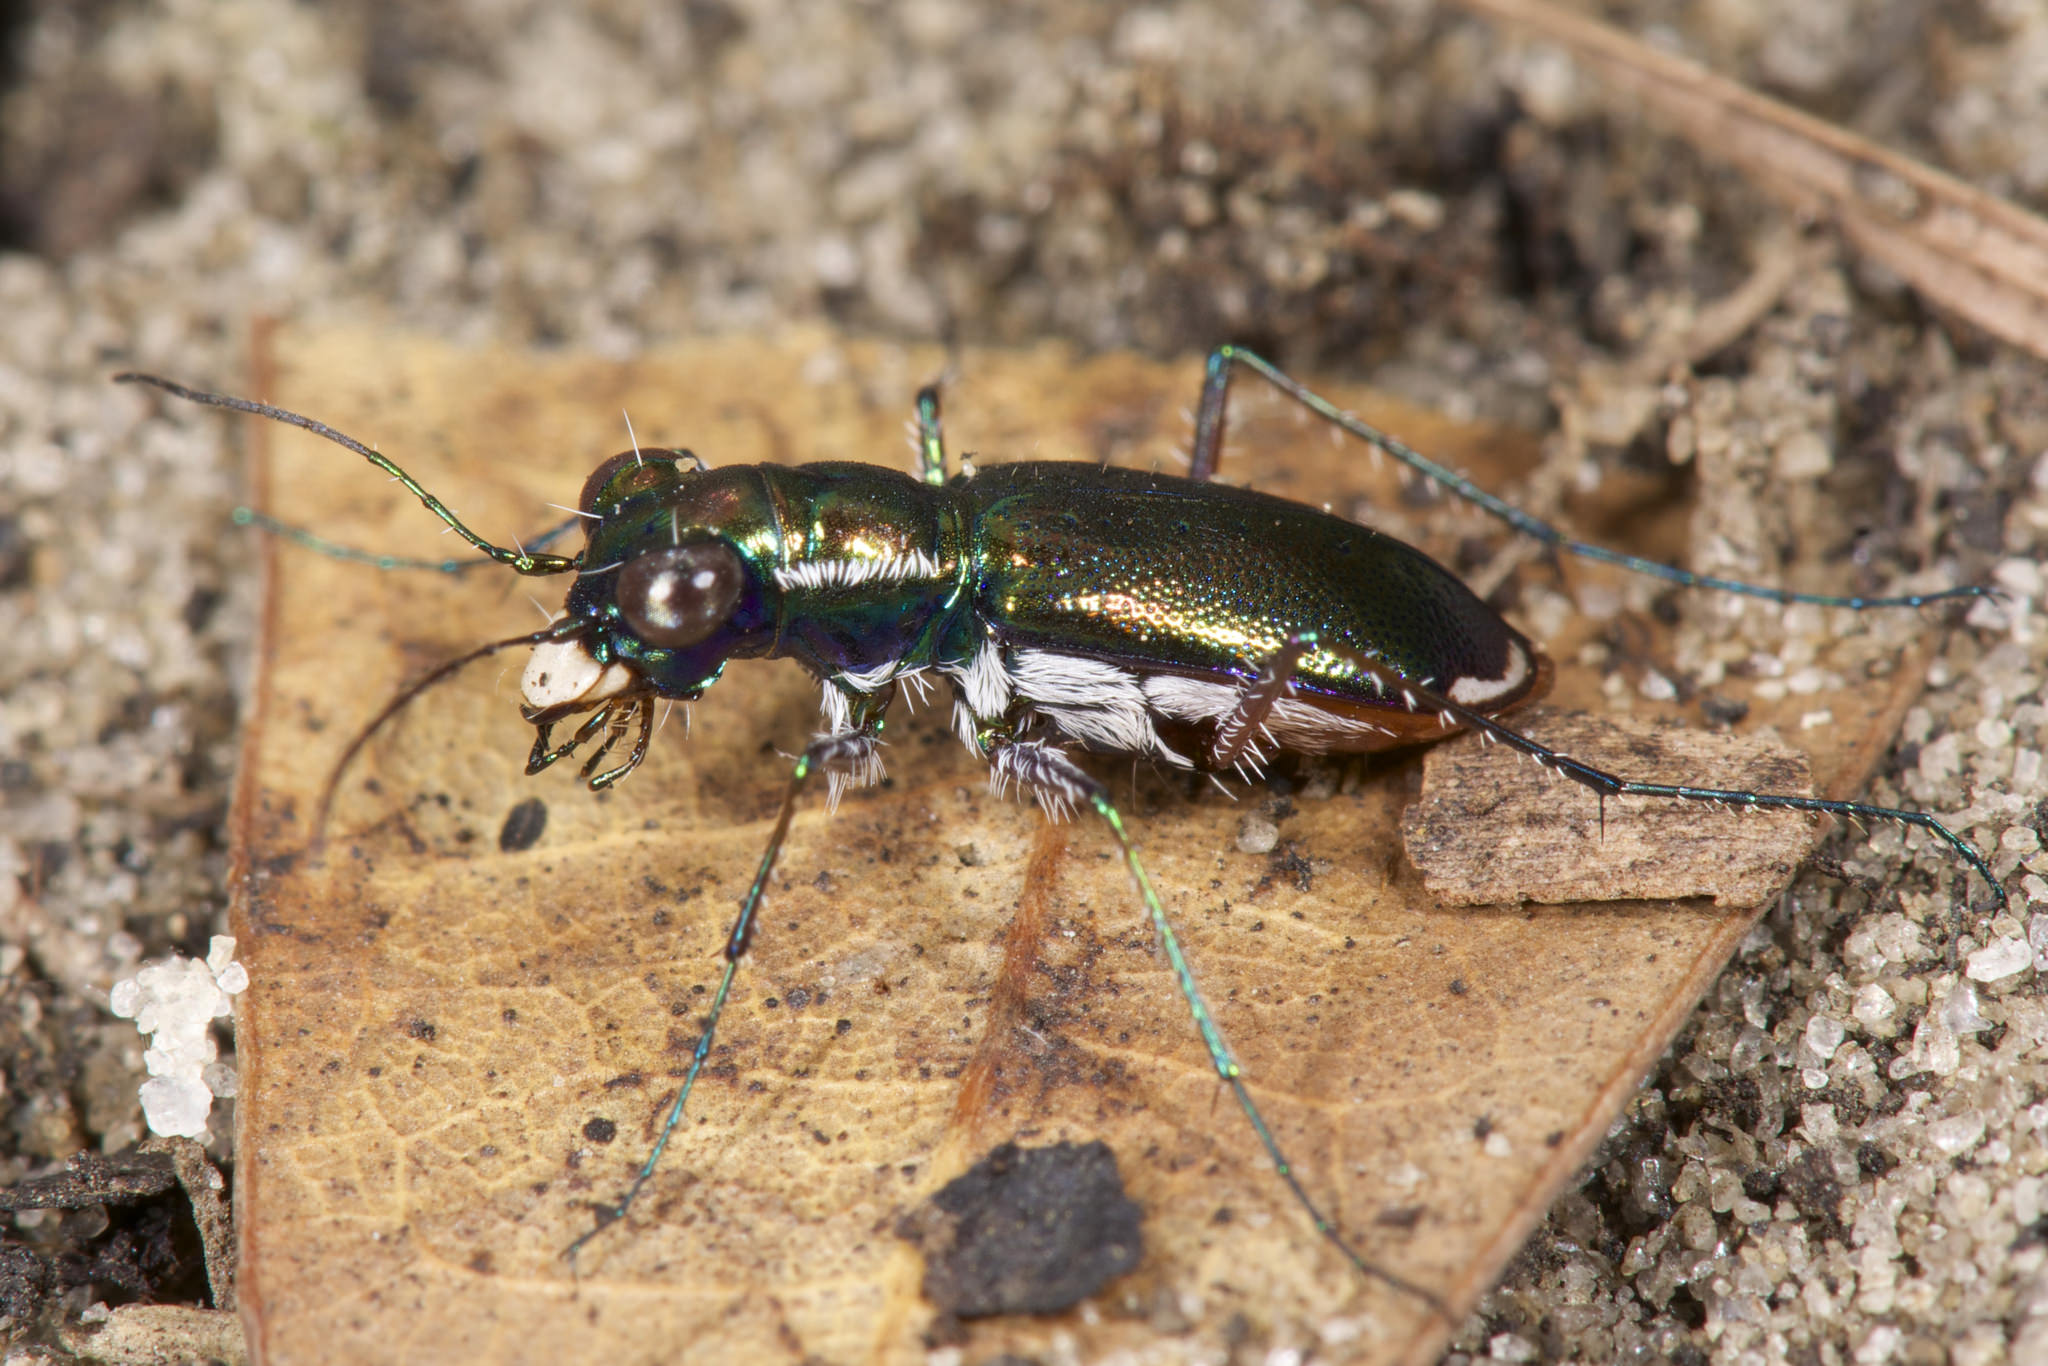 The Miami tiger beetle was recently listed for protection under the ESA. Photo by Jonathan Mays, Florida Fish and Wildlife Conservation Commission.